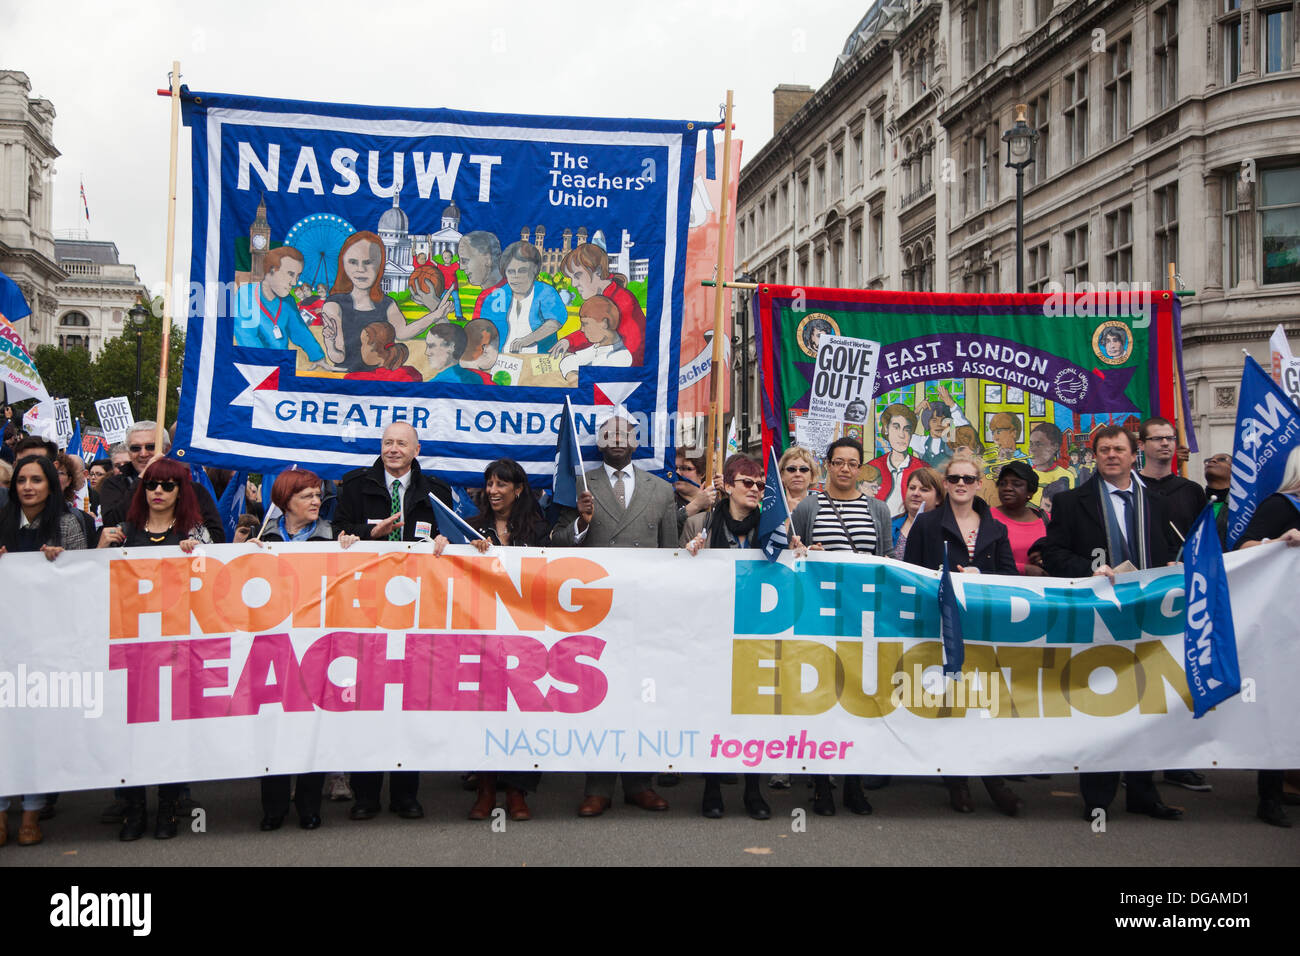 The march went under the parole: Protecting teachers. Defending Education. The march comes out of Whitehall into Parliament Sq. - Stock Image